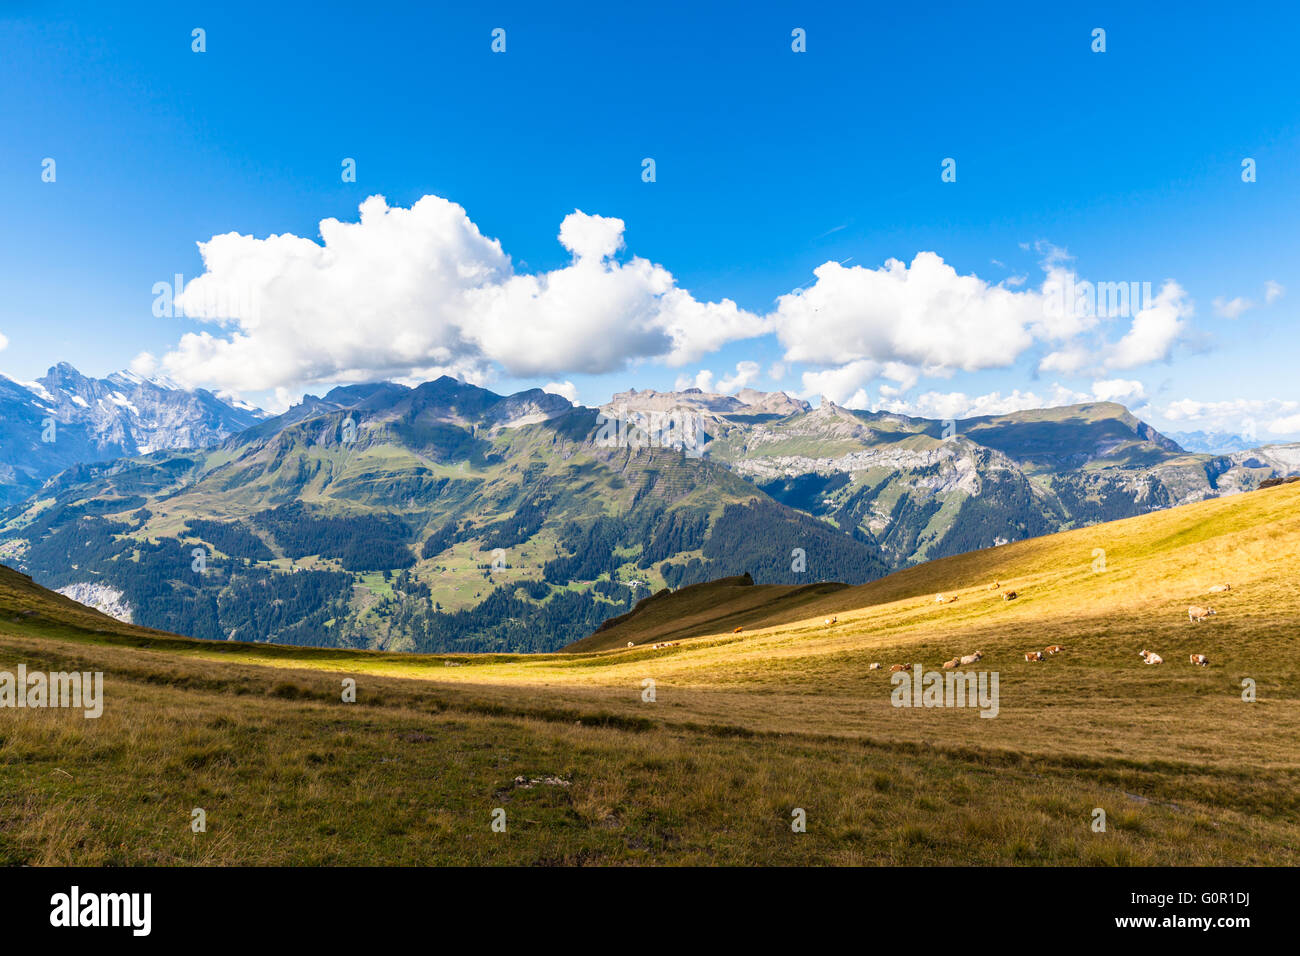 Panorama view of the Alps on Bernese Oberland and the Lauterbrunnen valley from Mannlichen station, Switzerland. - Stock Image